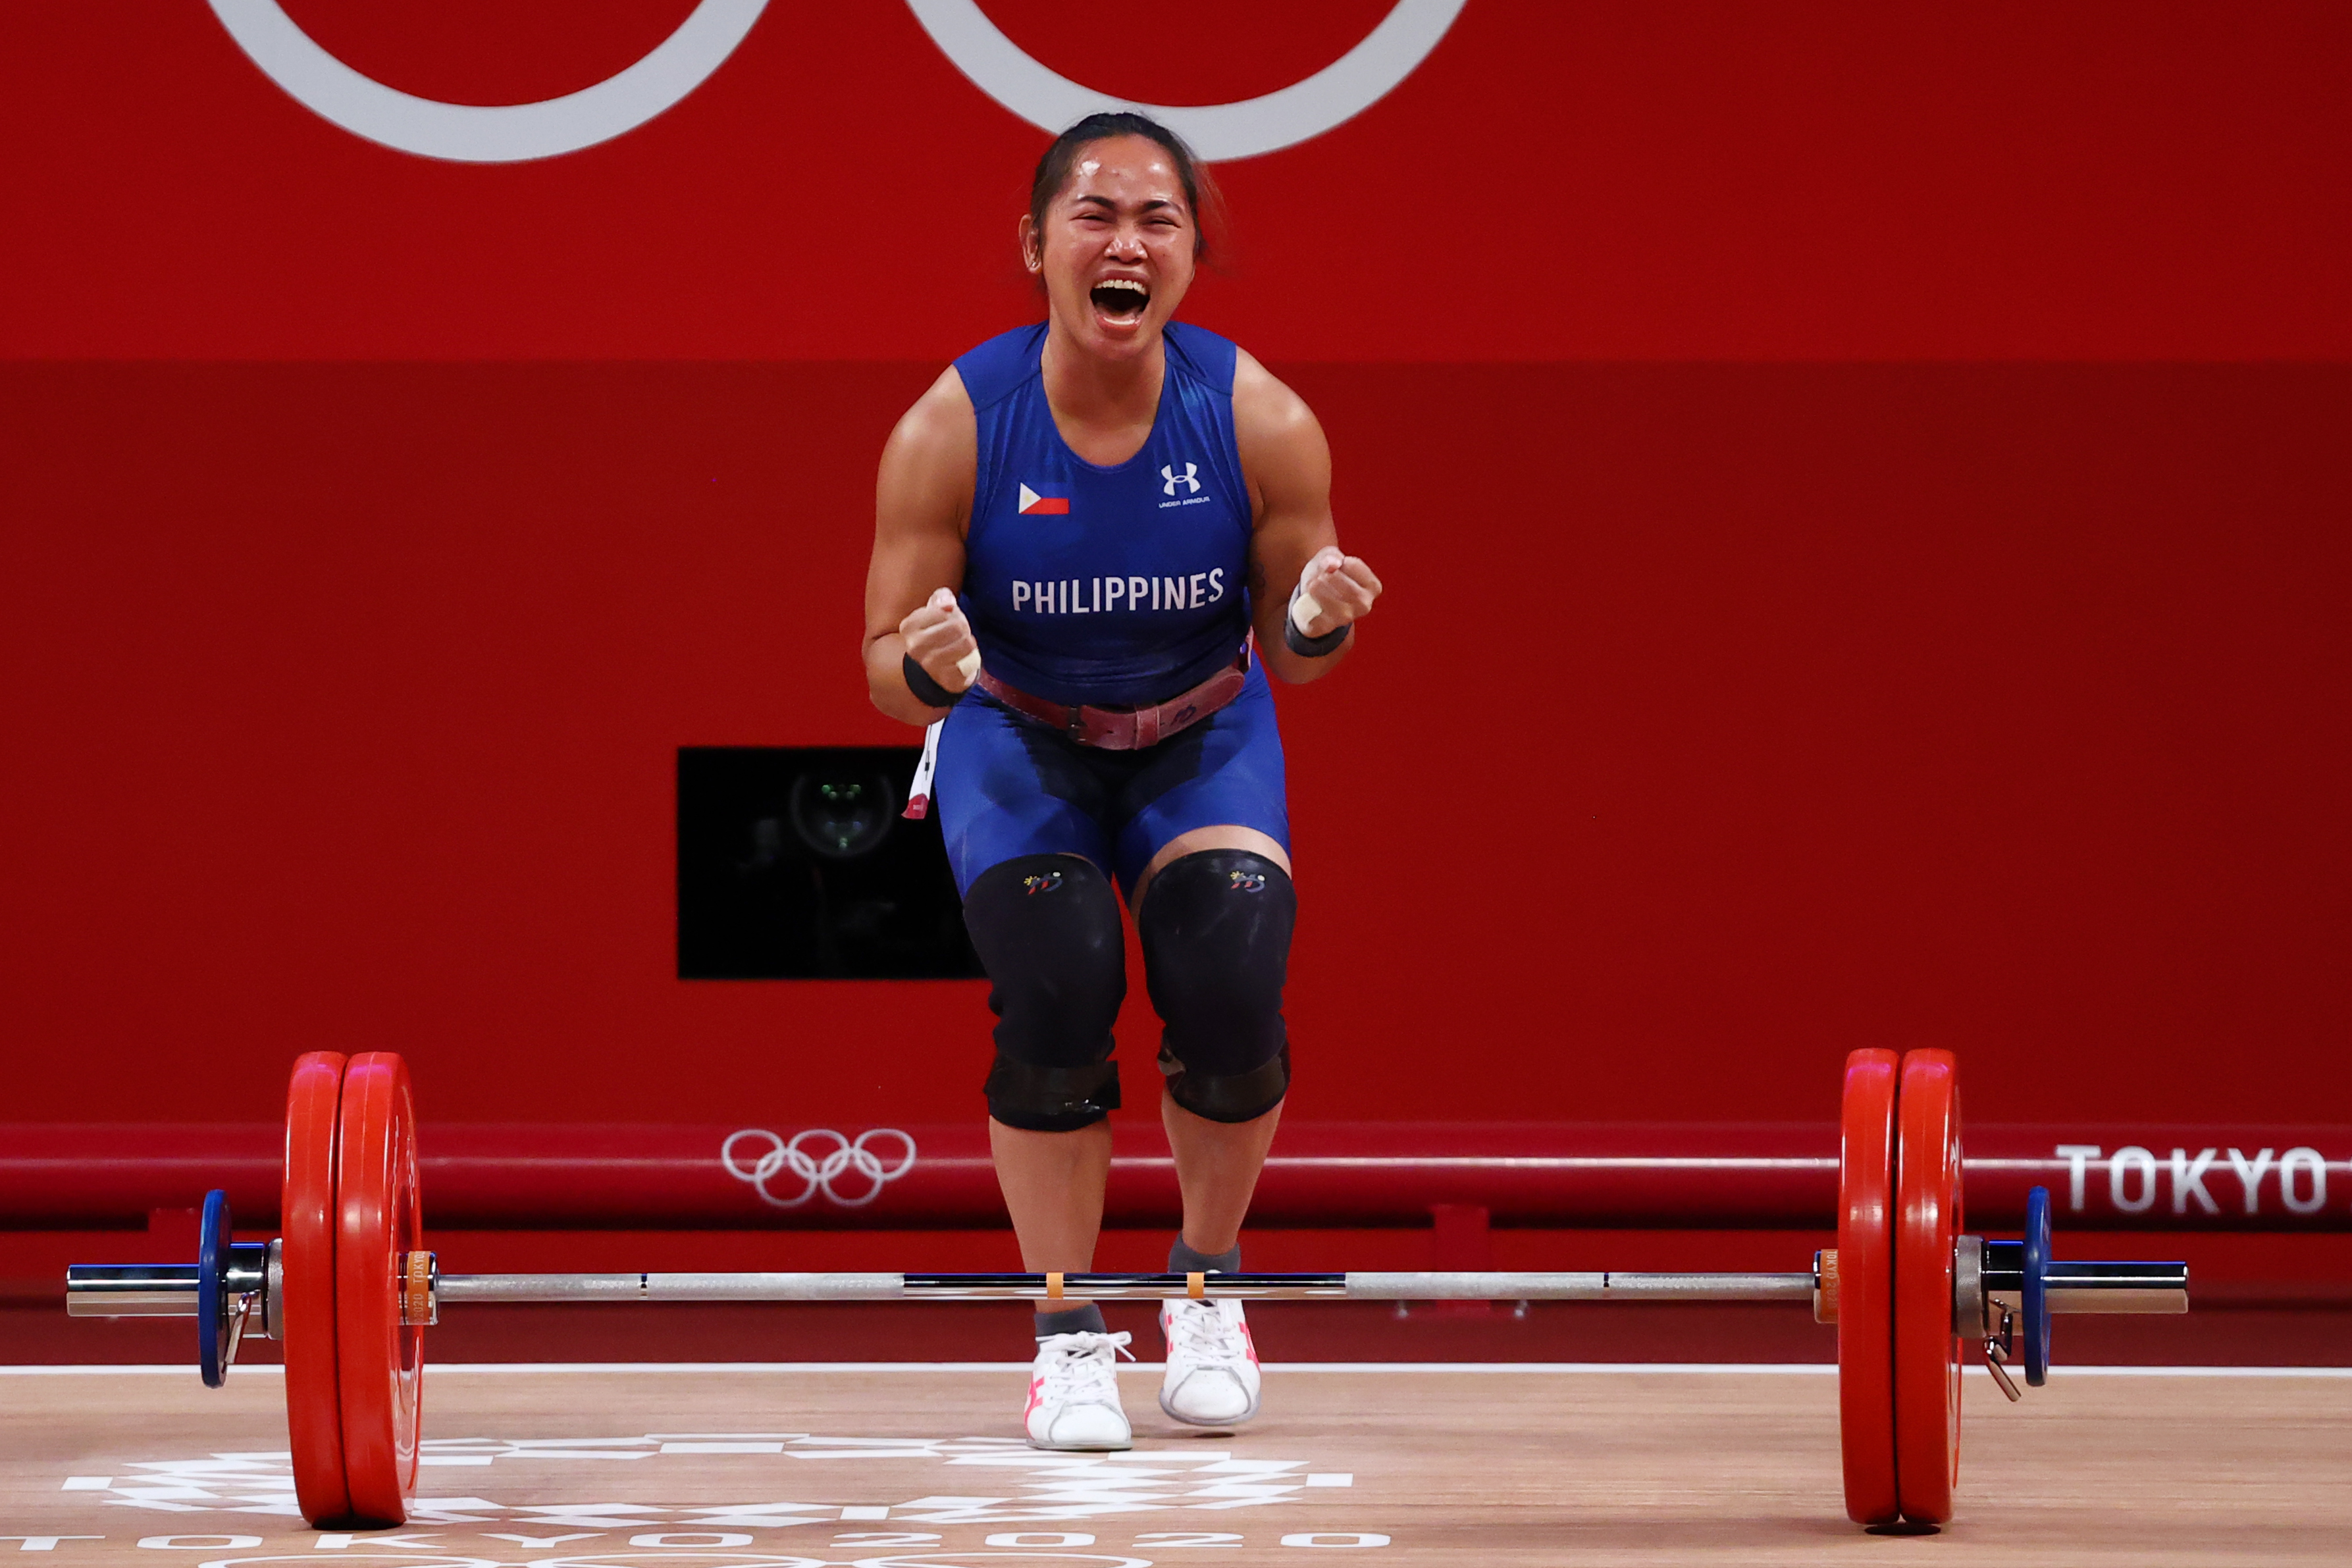 Tokyo 2020 Olympics - Weightlifting - Women's 55kg - Group A - Tokyo International Forum, Tokyo, Japan - July 26, 2021. Hidilyn Diaz of the Philippines celebrates after a lift. REUTERS/Edgard Garrido